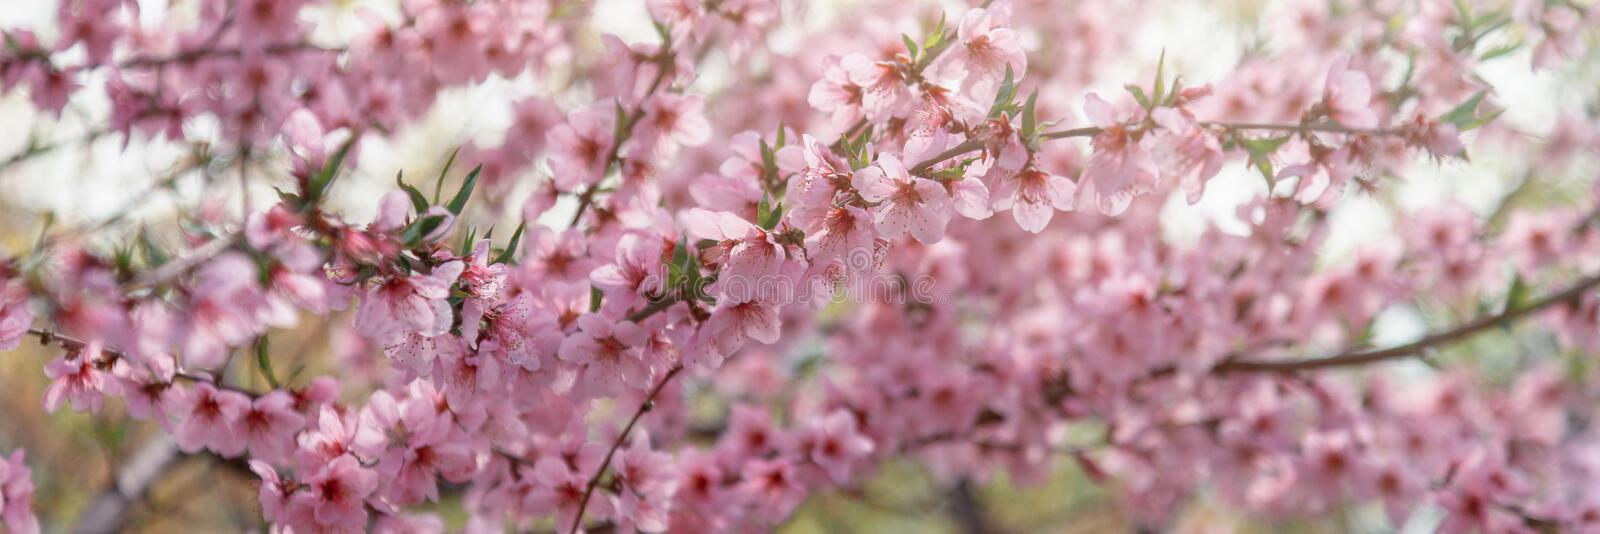 Beautiful pink flowering tree bright spring floral background and texture stock image